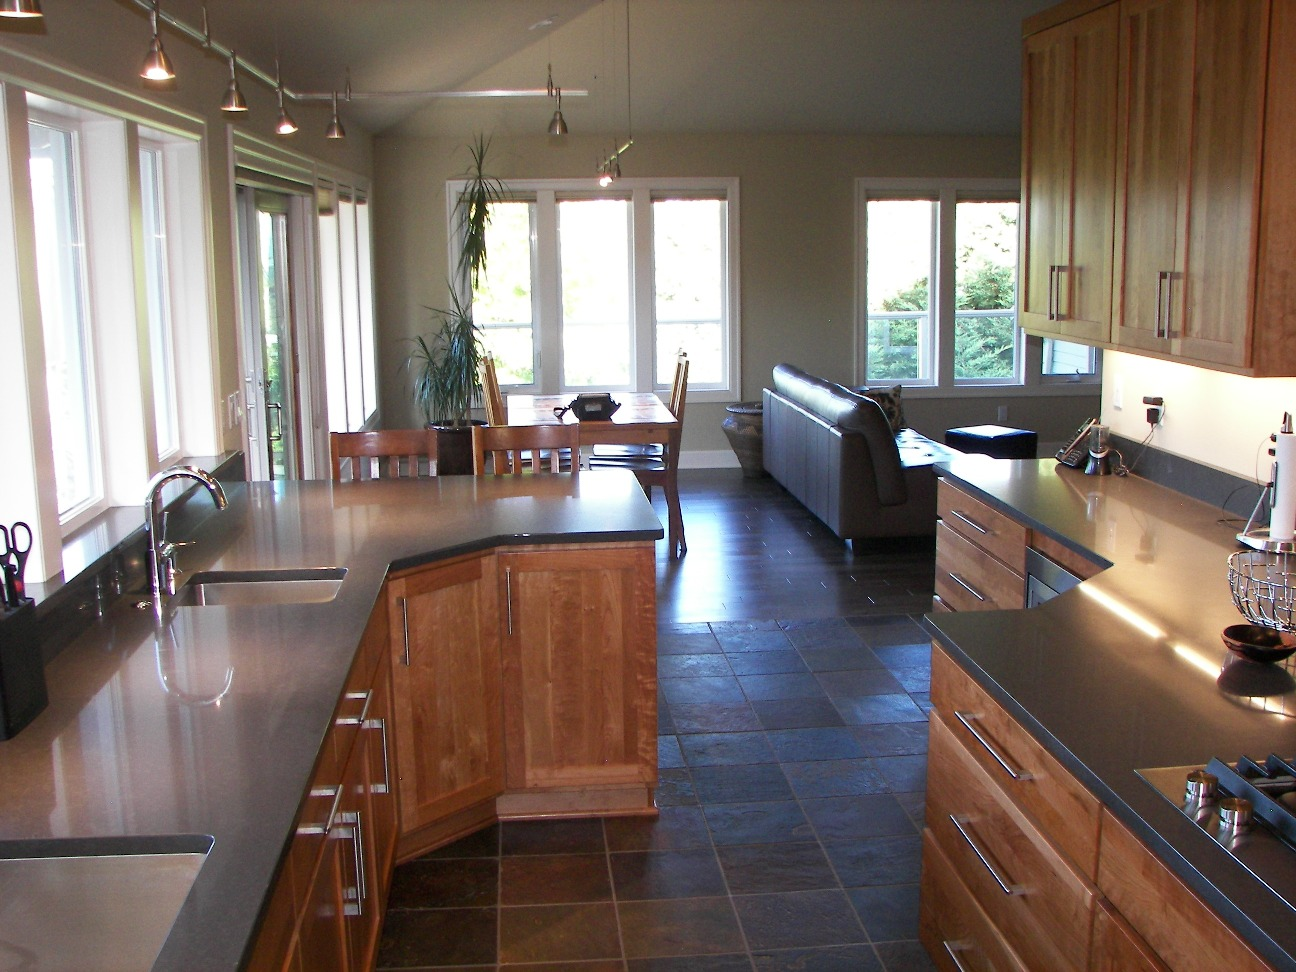 Pien Kitchen Remodel Kitchen Concepts Llc